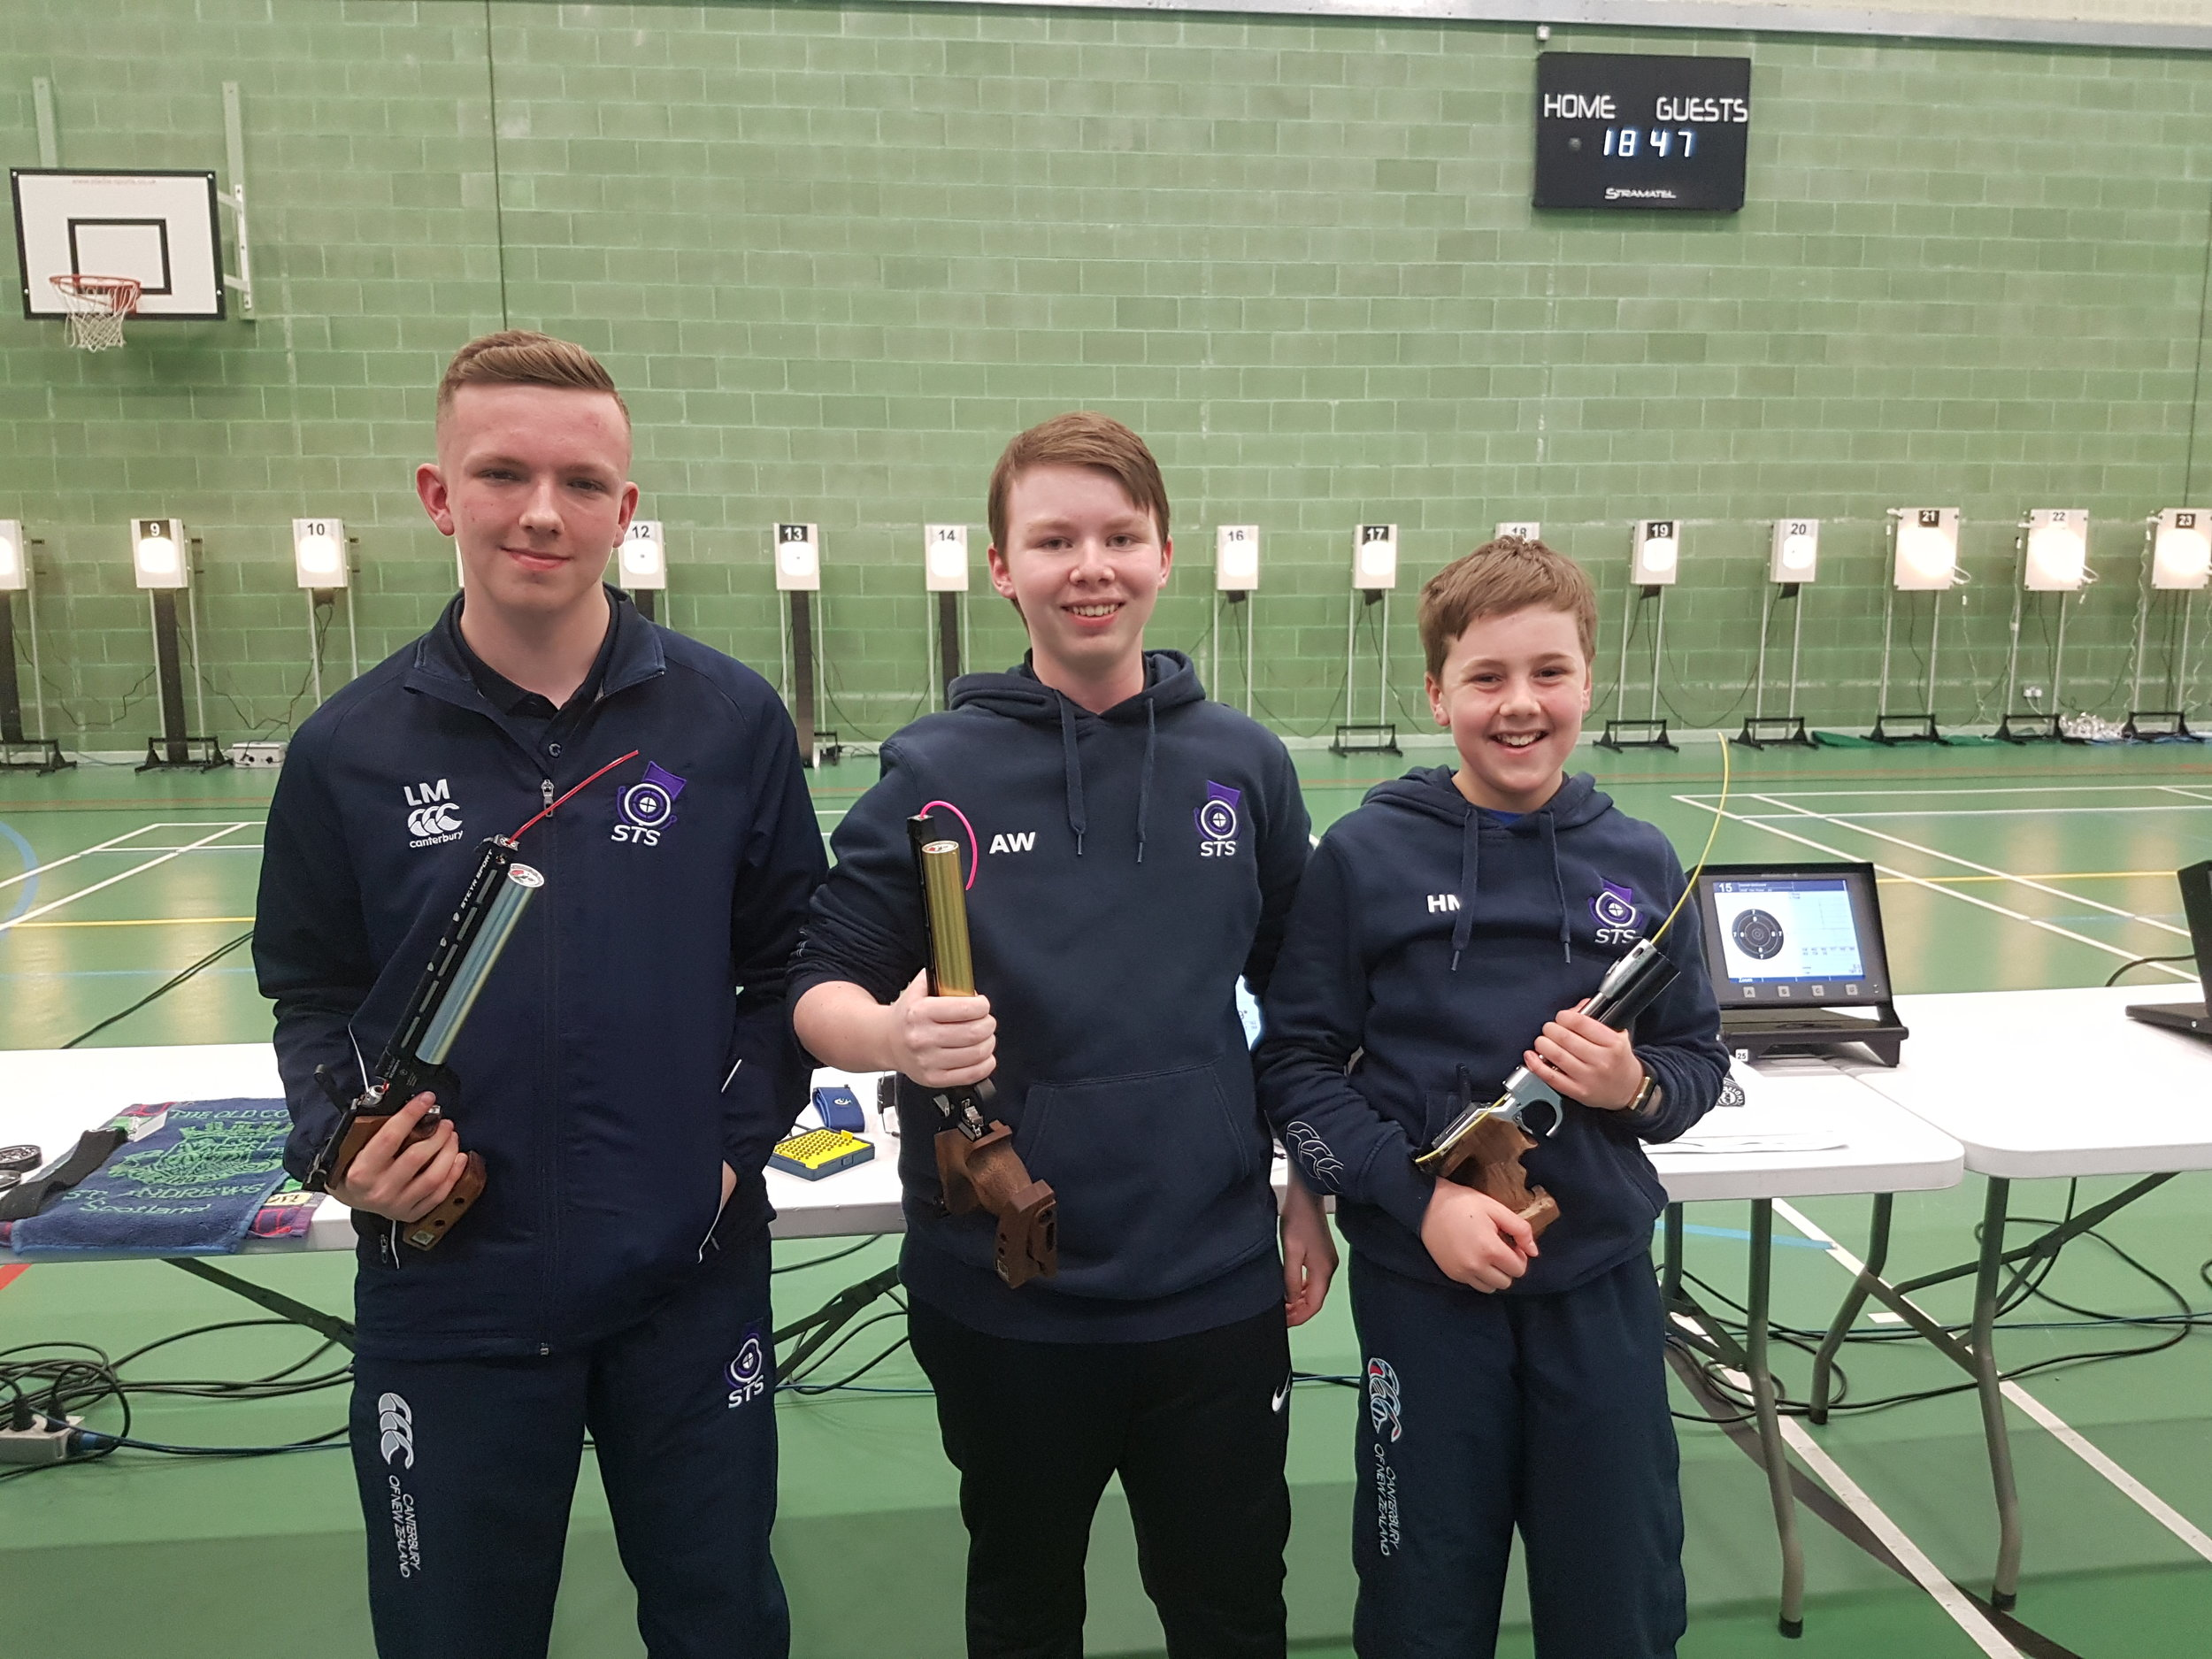 Winners - Men's Junior 10m Air Pistol Championships